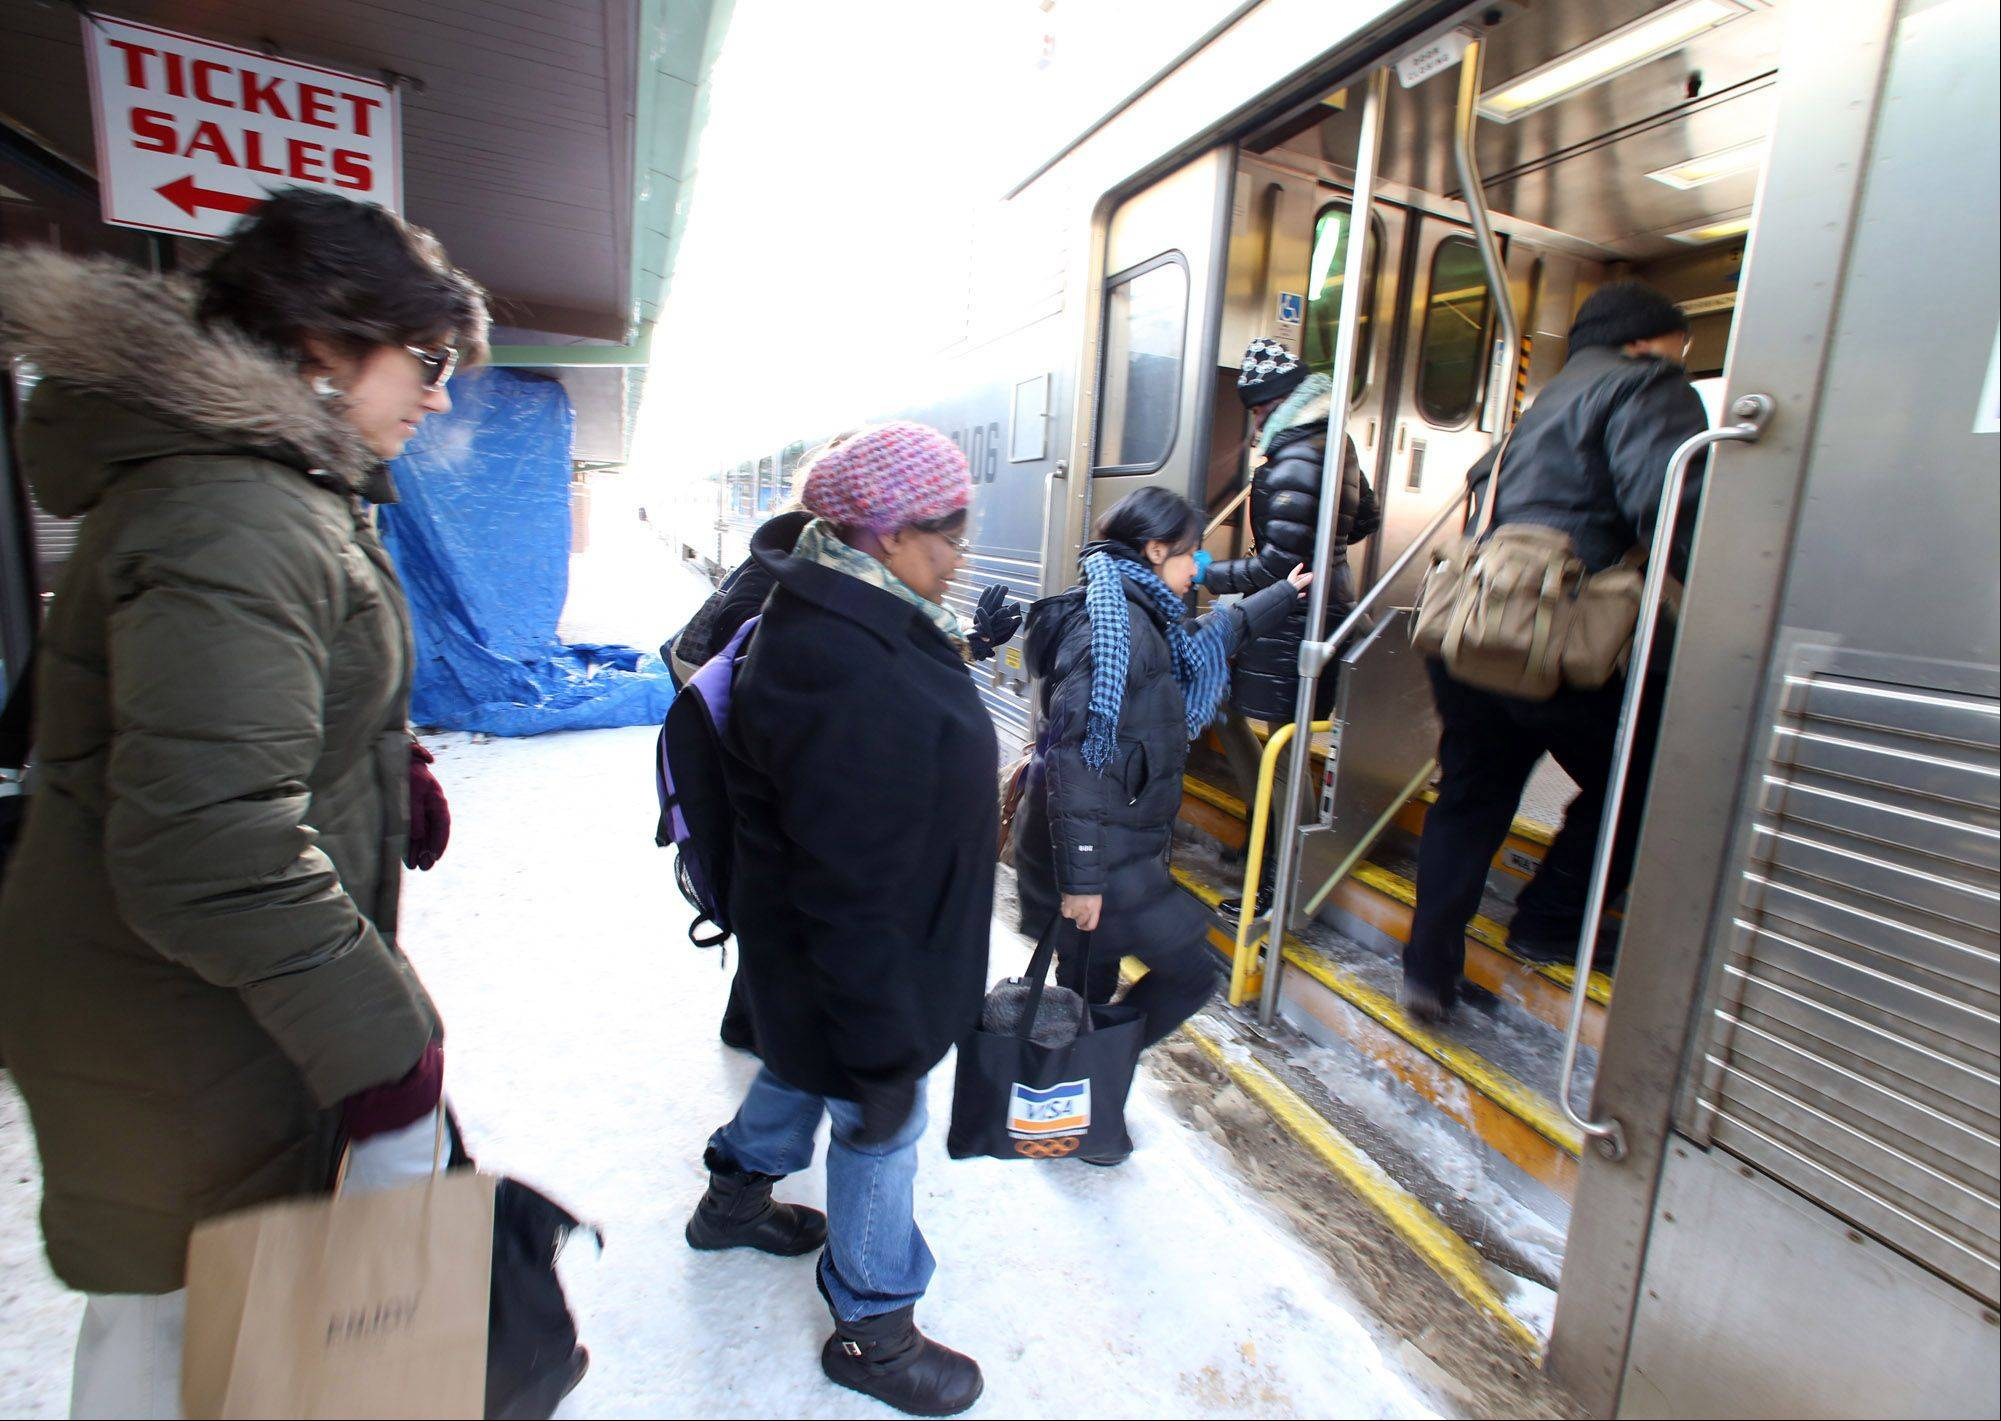 George LeClaire/gleclaire@dailyherald.com Commuters continued to experience delays Wednesday even as temperatures improved.